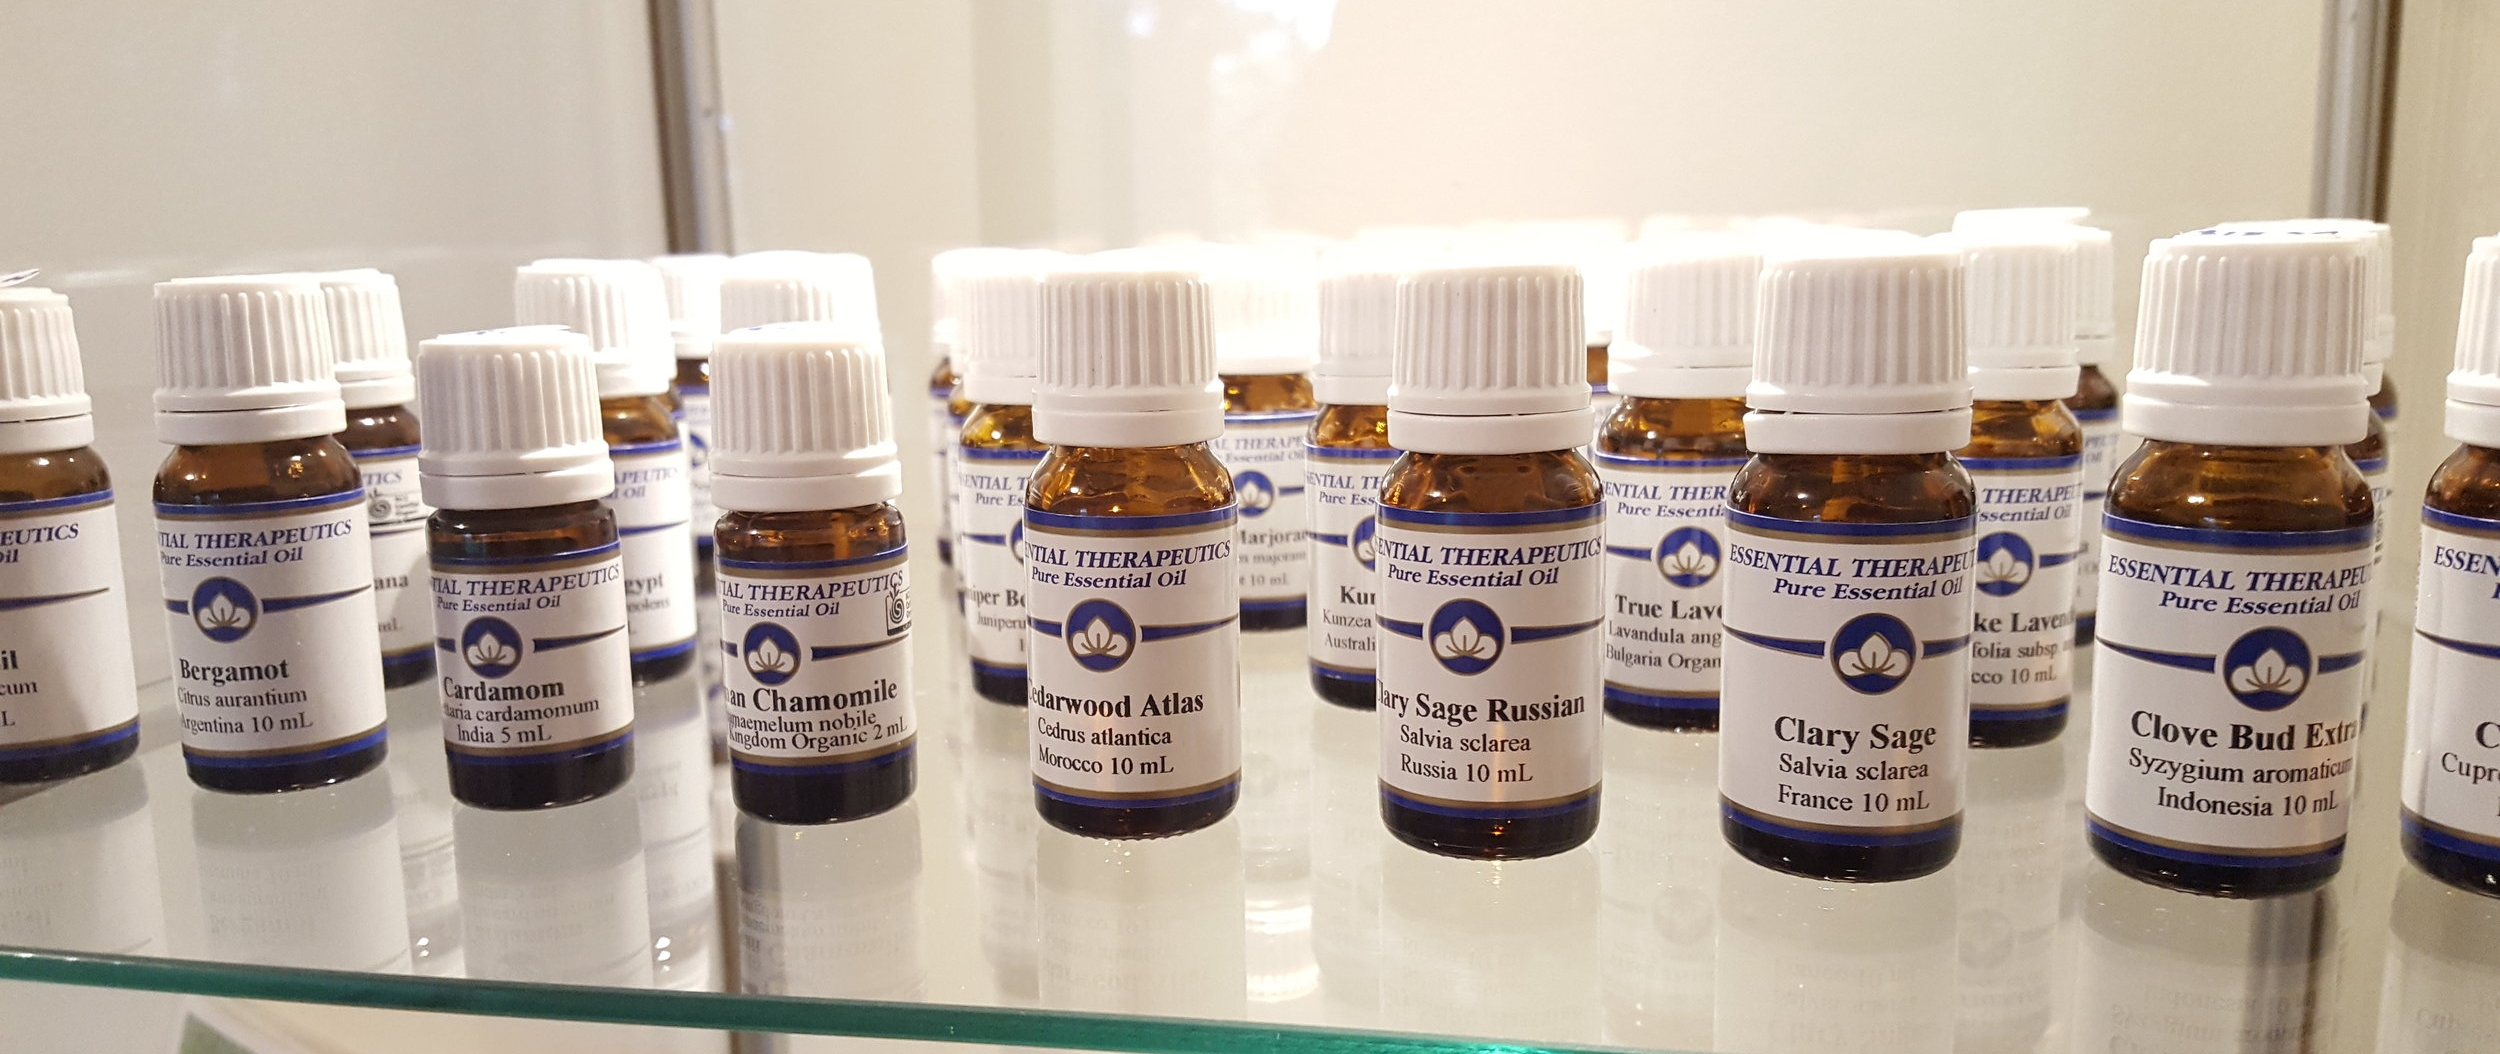 ESSENTIAL THERAPEUTICS ESSENTIAL OILS - AN AUSTRALIAN BRAND I USE AND SELL